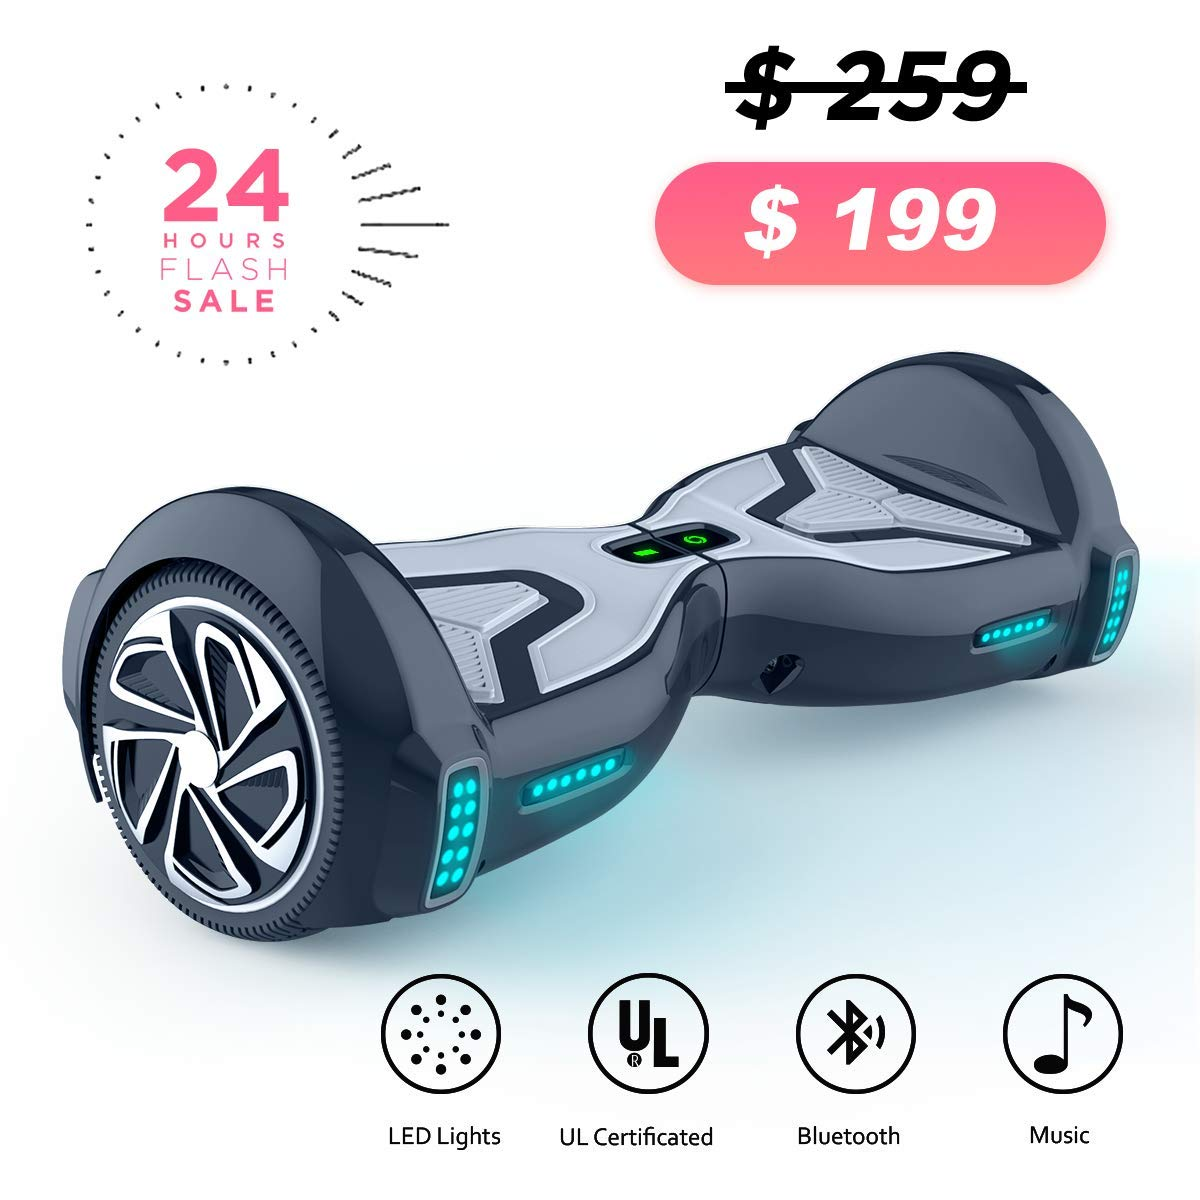 TOMOLOO Hoverboard for Kids and Adult, 6.5'' Two Wheels App Controlled Electric Self Balancing Scooter UL2272 Certified ...